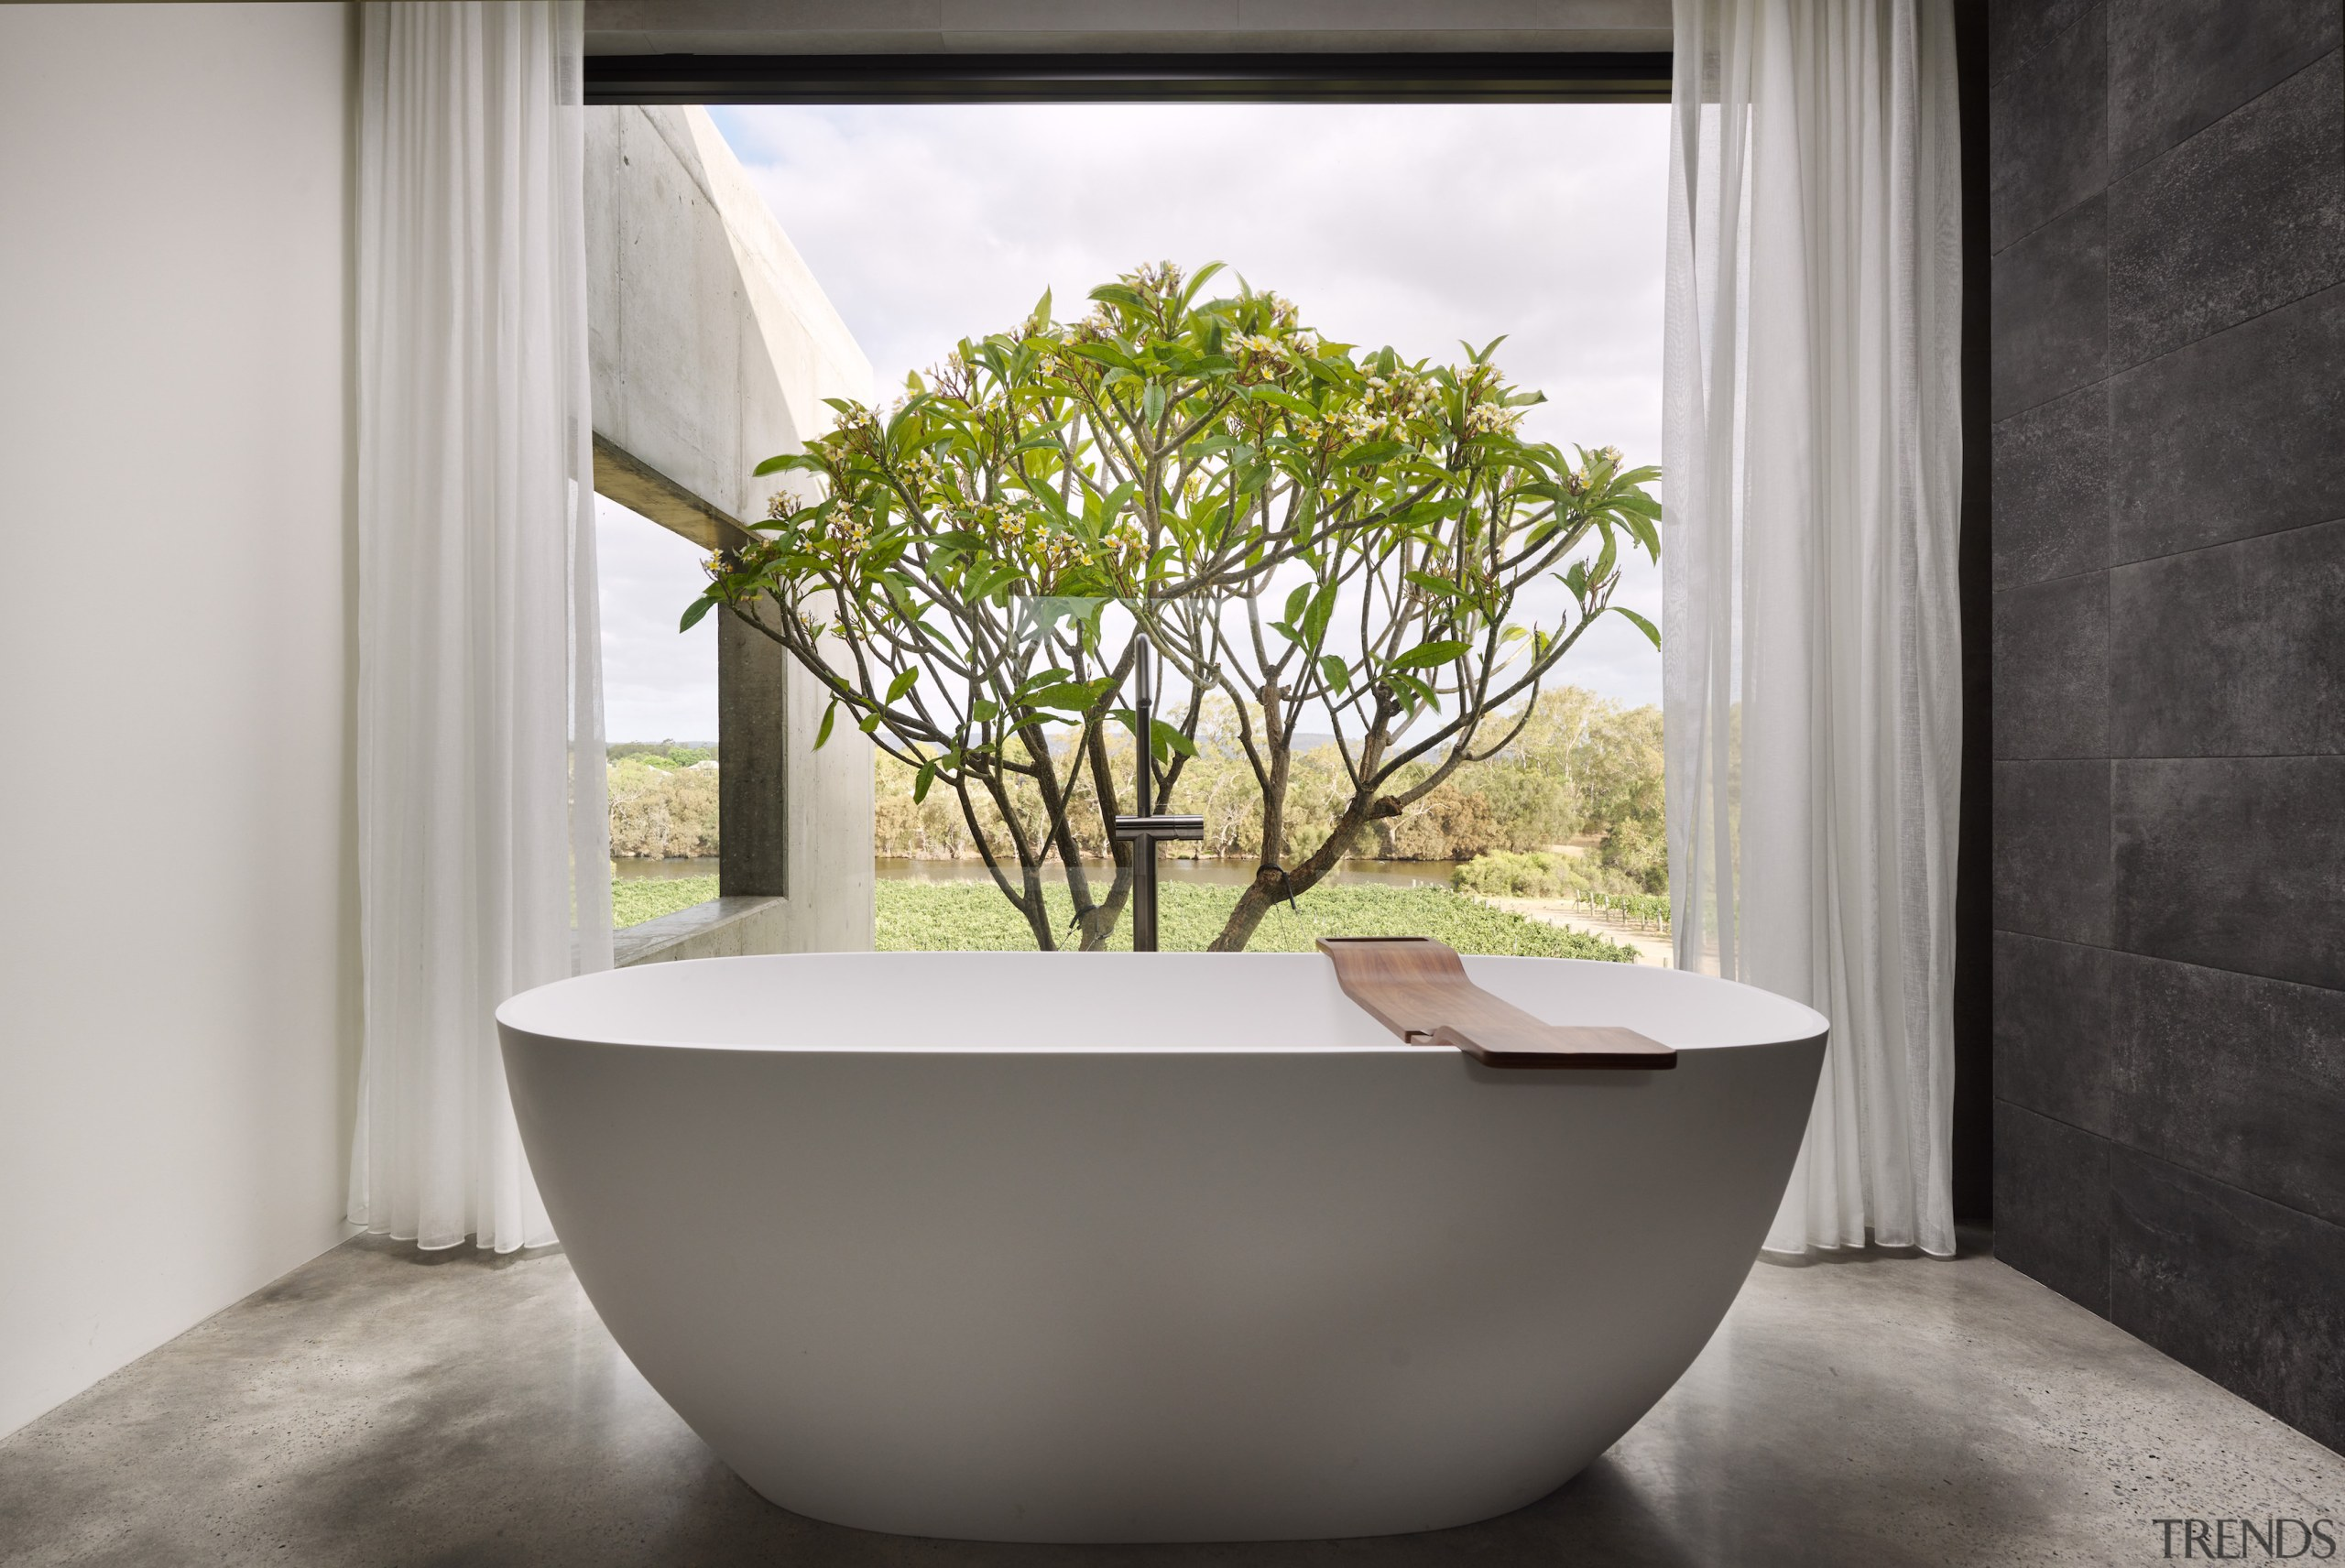 The freestanding bath is centred on an amazing